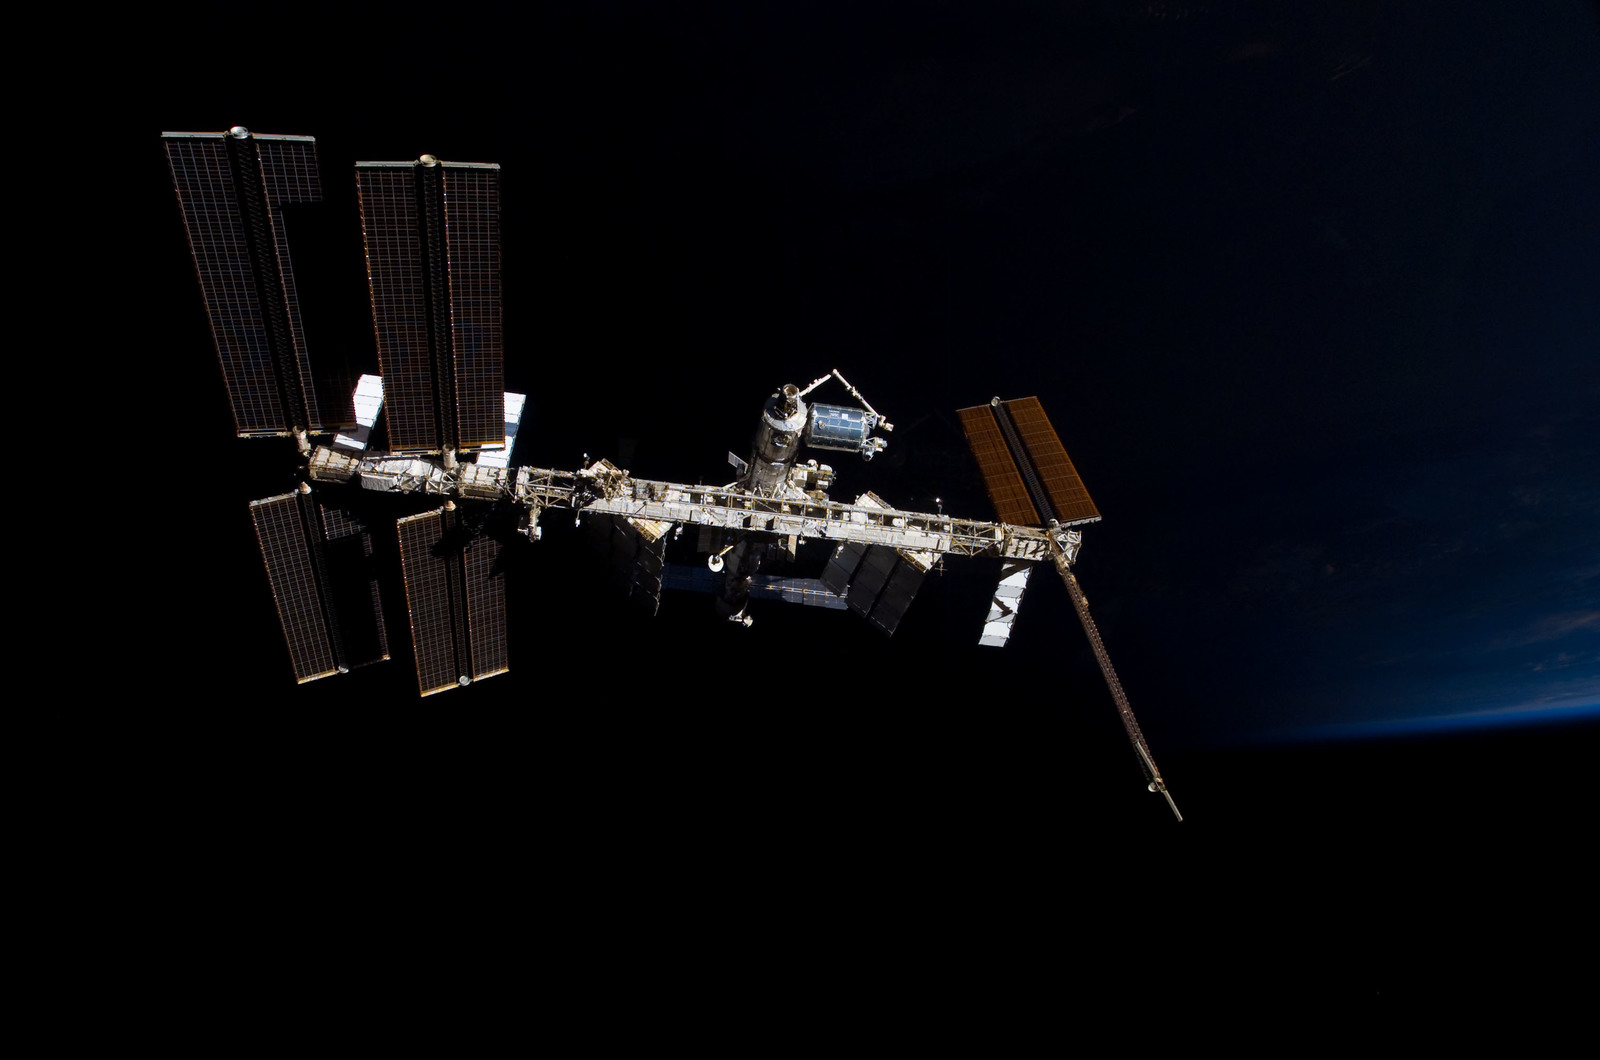 S122E009863 - STS-122 - View of ISS after STS-122 Undocking